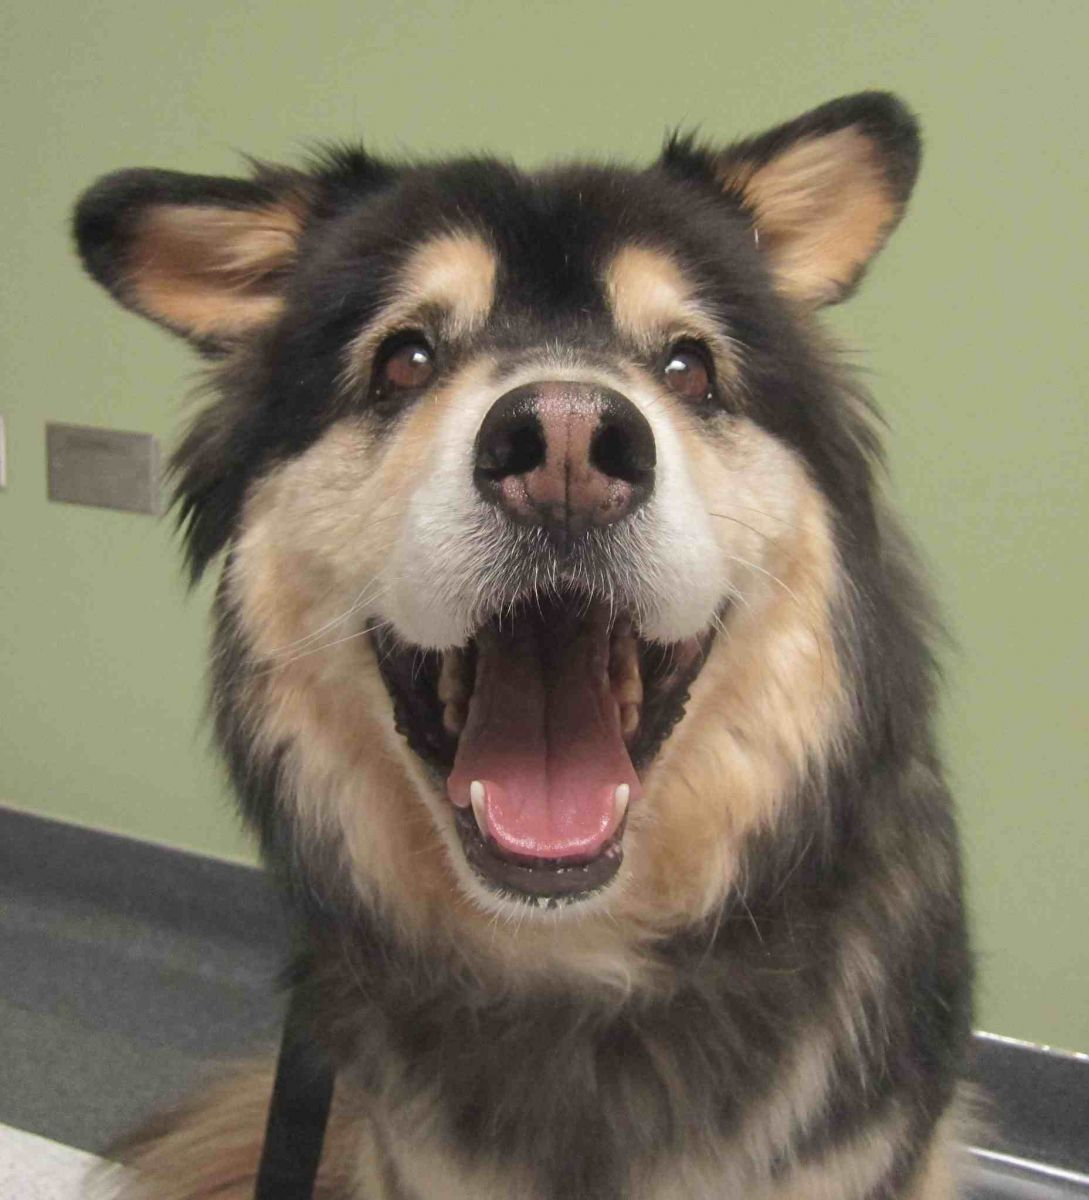 Amazing Com: Dogs Smile With Their Teeth And Look Too Cute In The